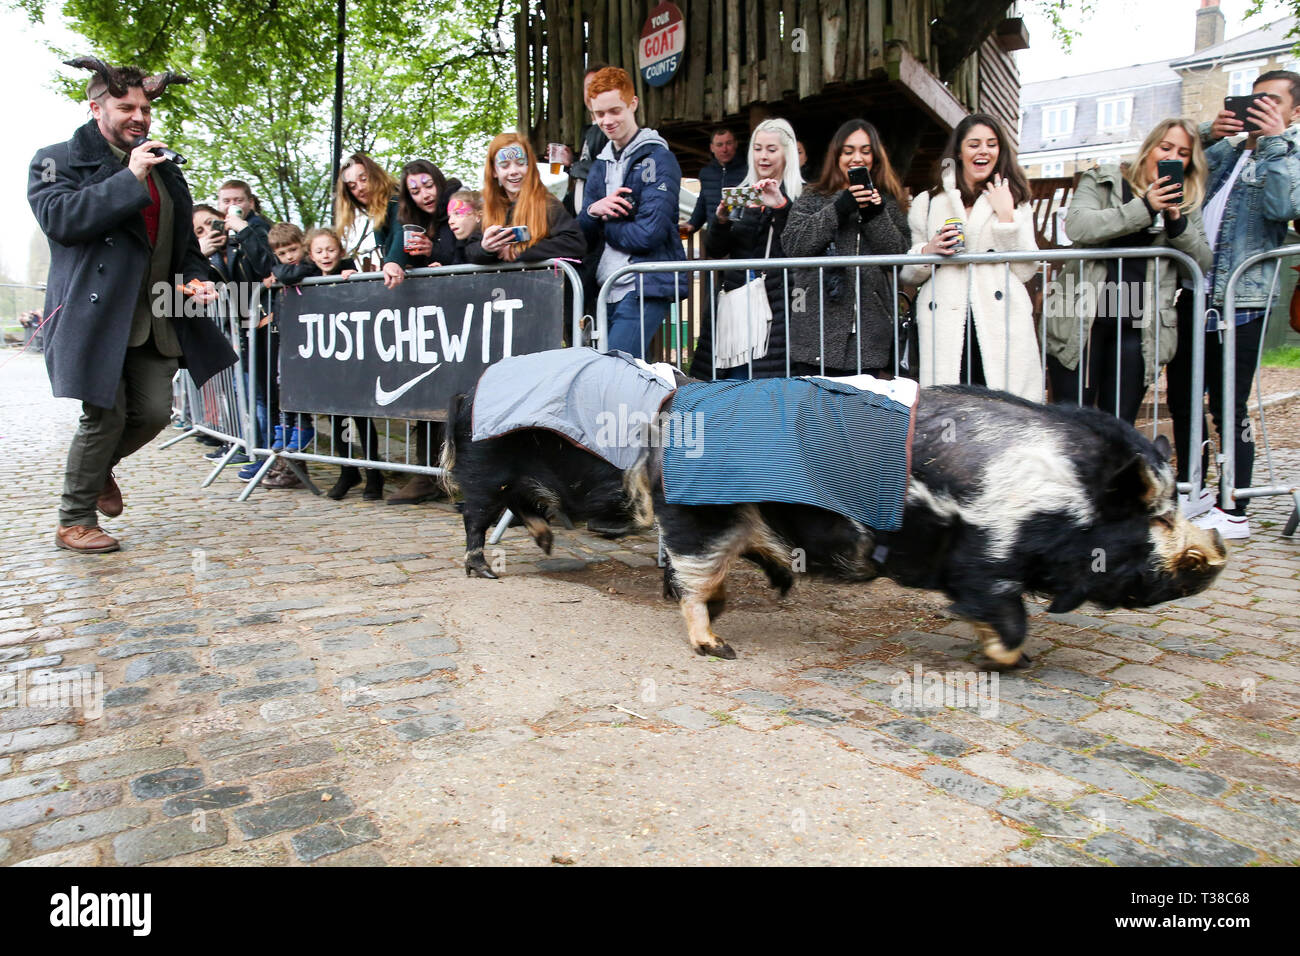 London, UK, UK. 7th Apr, 2019. Two pigs are seen taking part in a race before the Oxford vs Cambridge Goat Race in East London.Two pygmy goats compete during the 10th Oxford and Cambridge Goat Race at Spitalfields City Farm, Bethnal Green in East London. The annual fundraising event, which takes place at the same time as the Oxford and Cambridge boat race, where two goats, one named Hamish representing Oxford and the other Hugo representing Cambridge to be crowned King Billy. Credit: Dinendra Haria/SOPA Images/ZUMA Wire/Alamy Live News - Stock Image